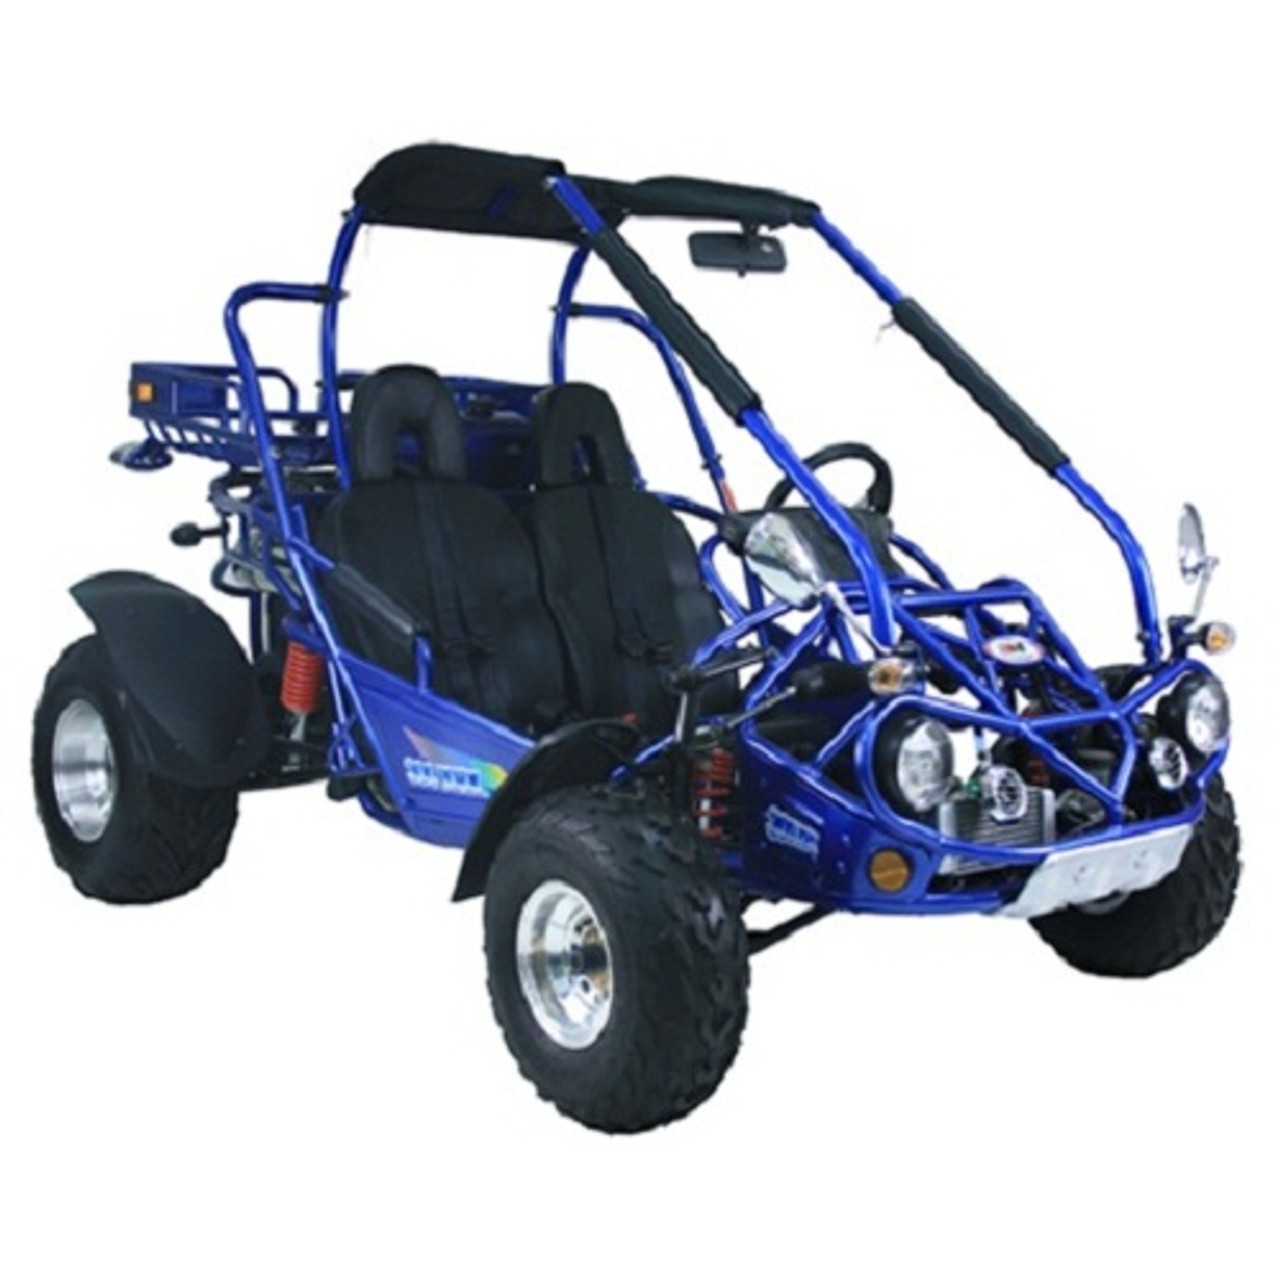 TrailMaster BV Powersports go kart 300cc water cooled sale online